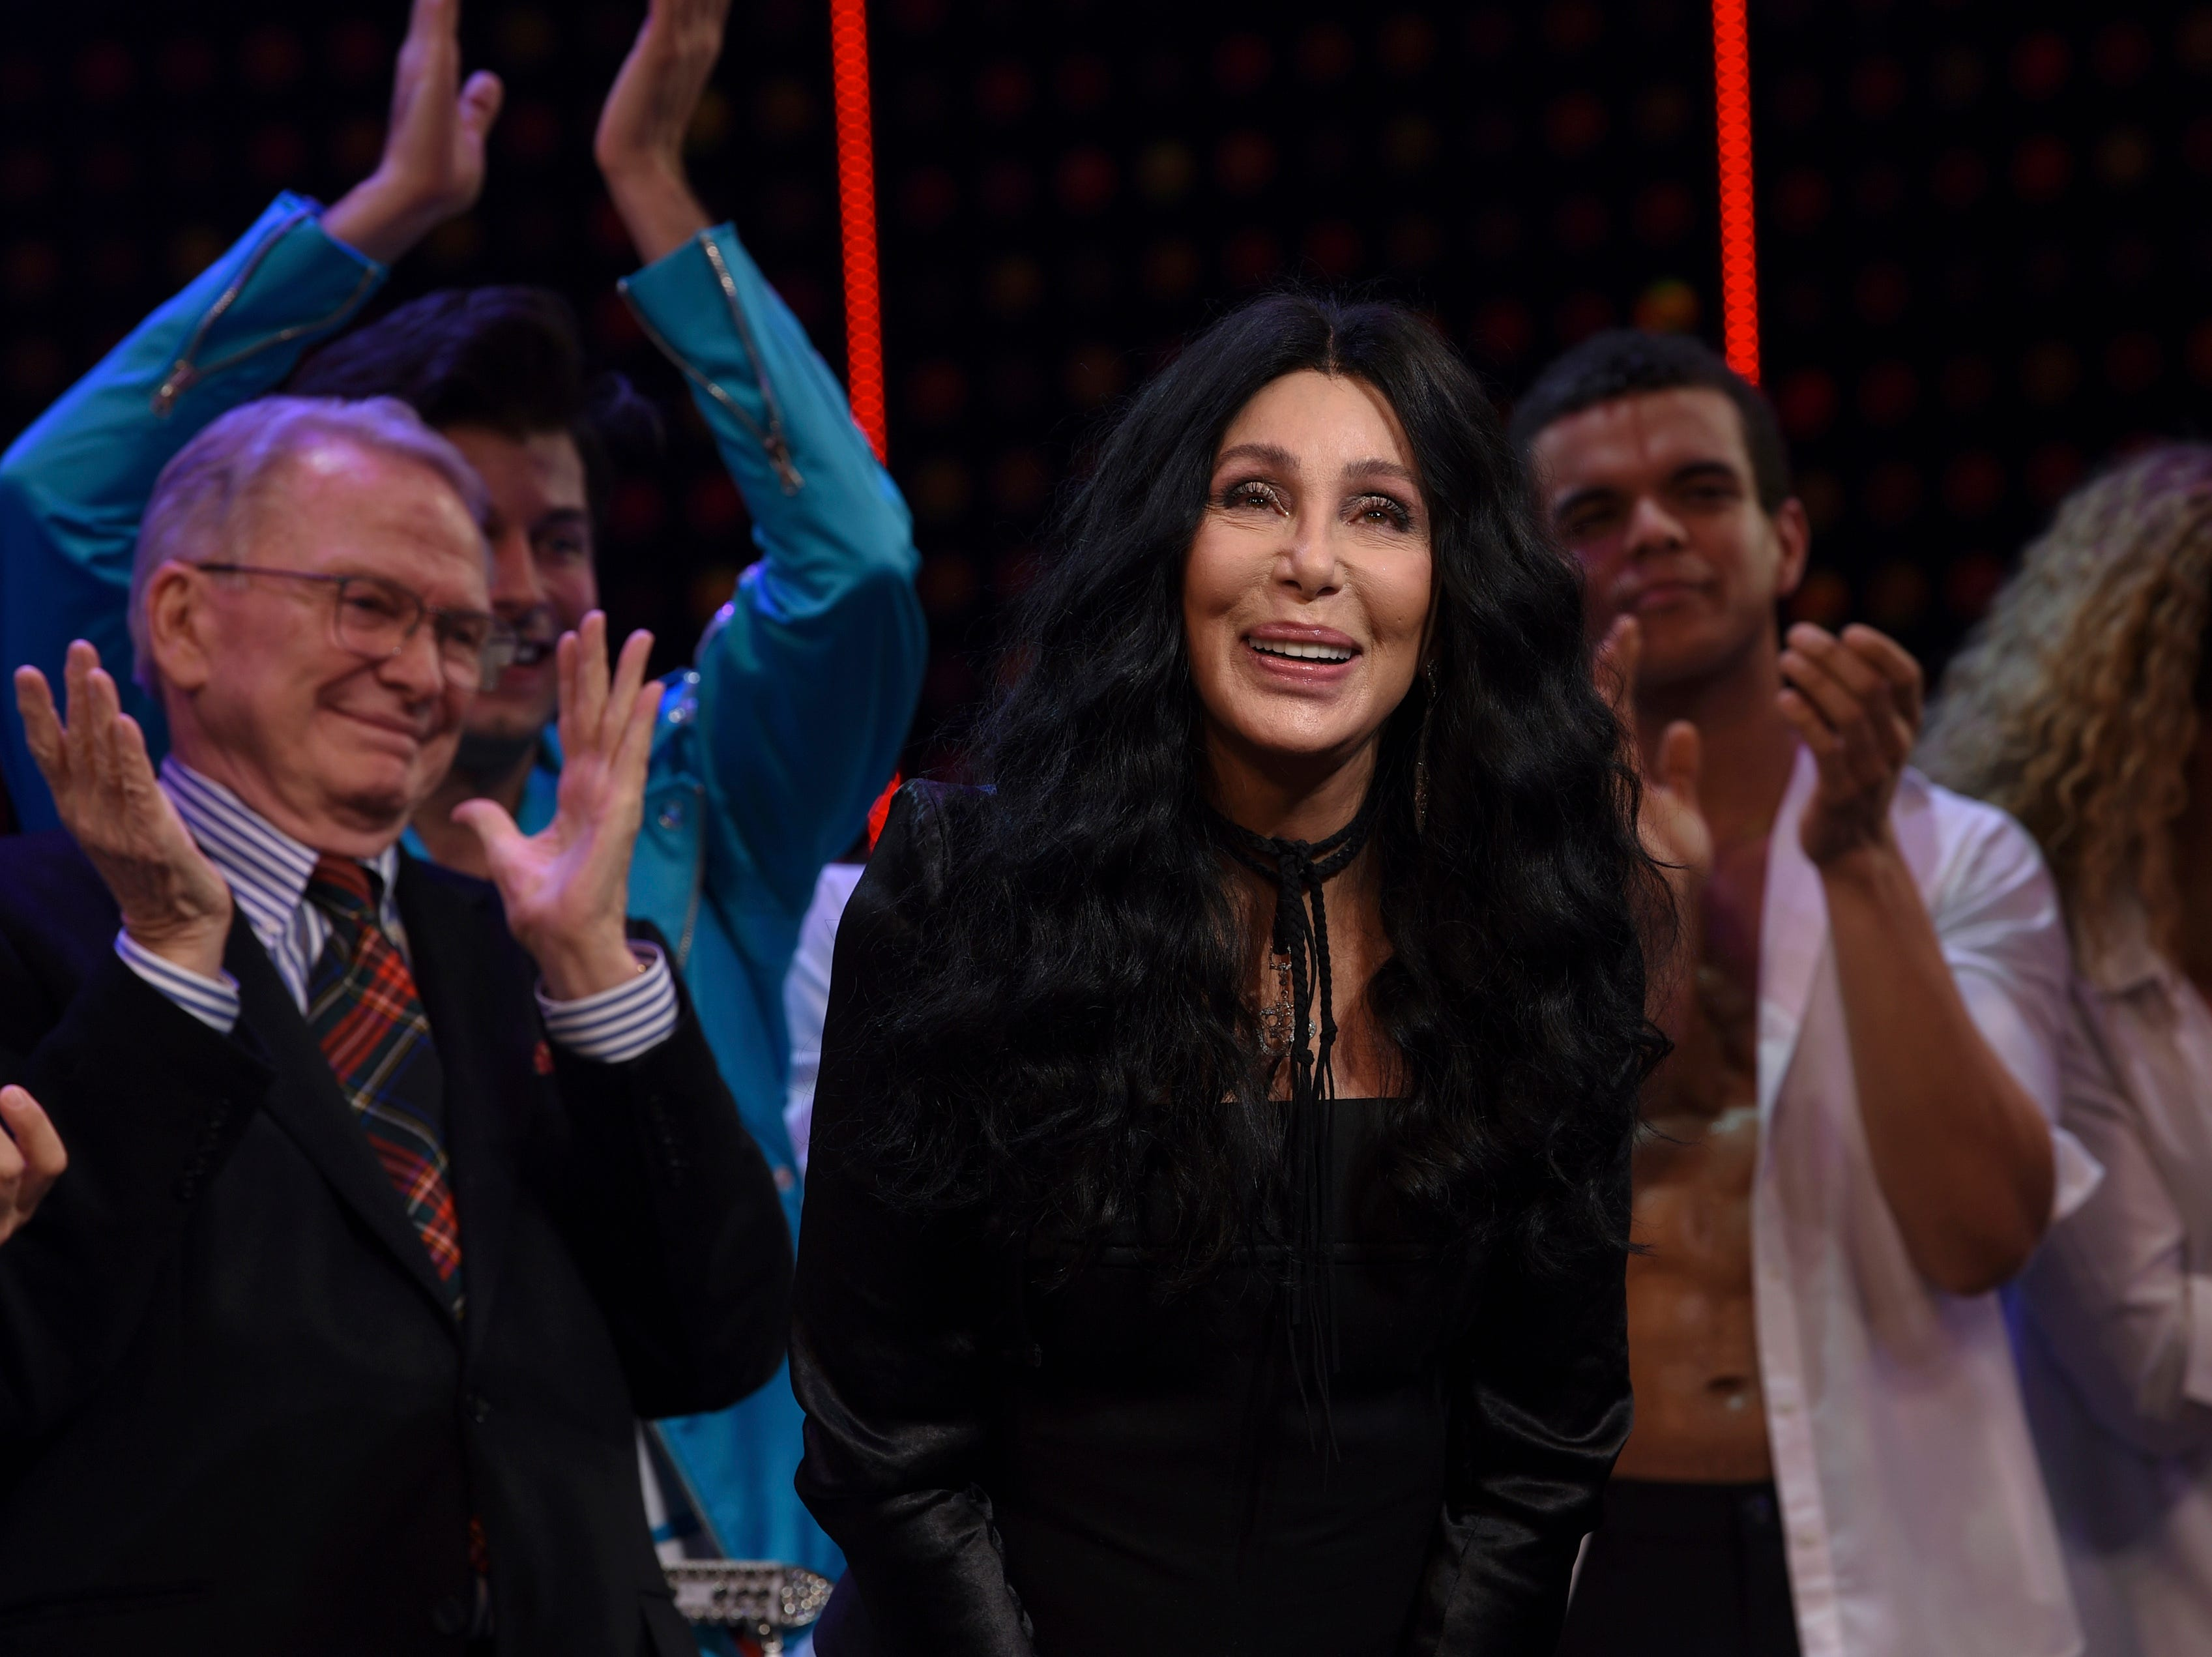 """Cher takes a bow on stage with designer Bob Mackie behind her during the curtain call for """"The Cher Show"""" Broadway musical opening night at the Neil Simon Theatre on Monday, Dec. 3, 2018, in New York. (Photo by Evan Agostini/Invision/AP) ORG XMIT: NYEA206"""